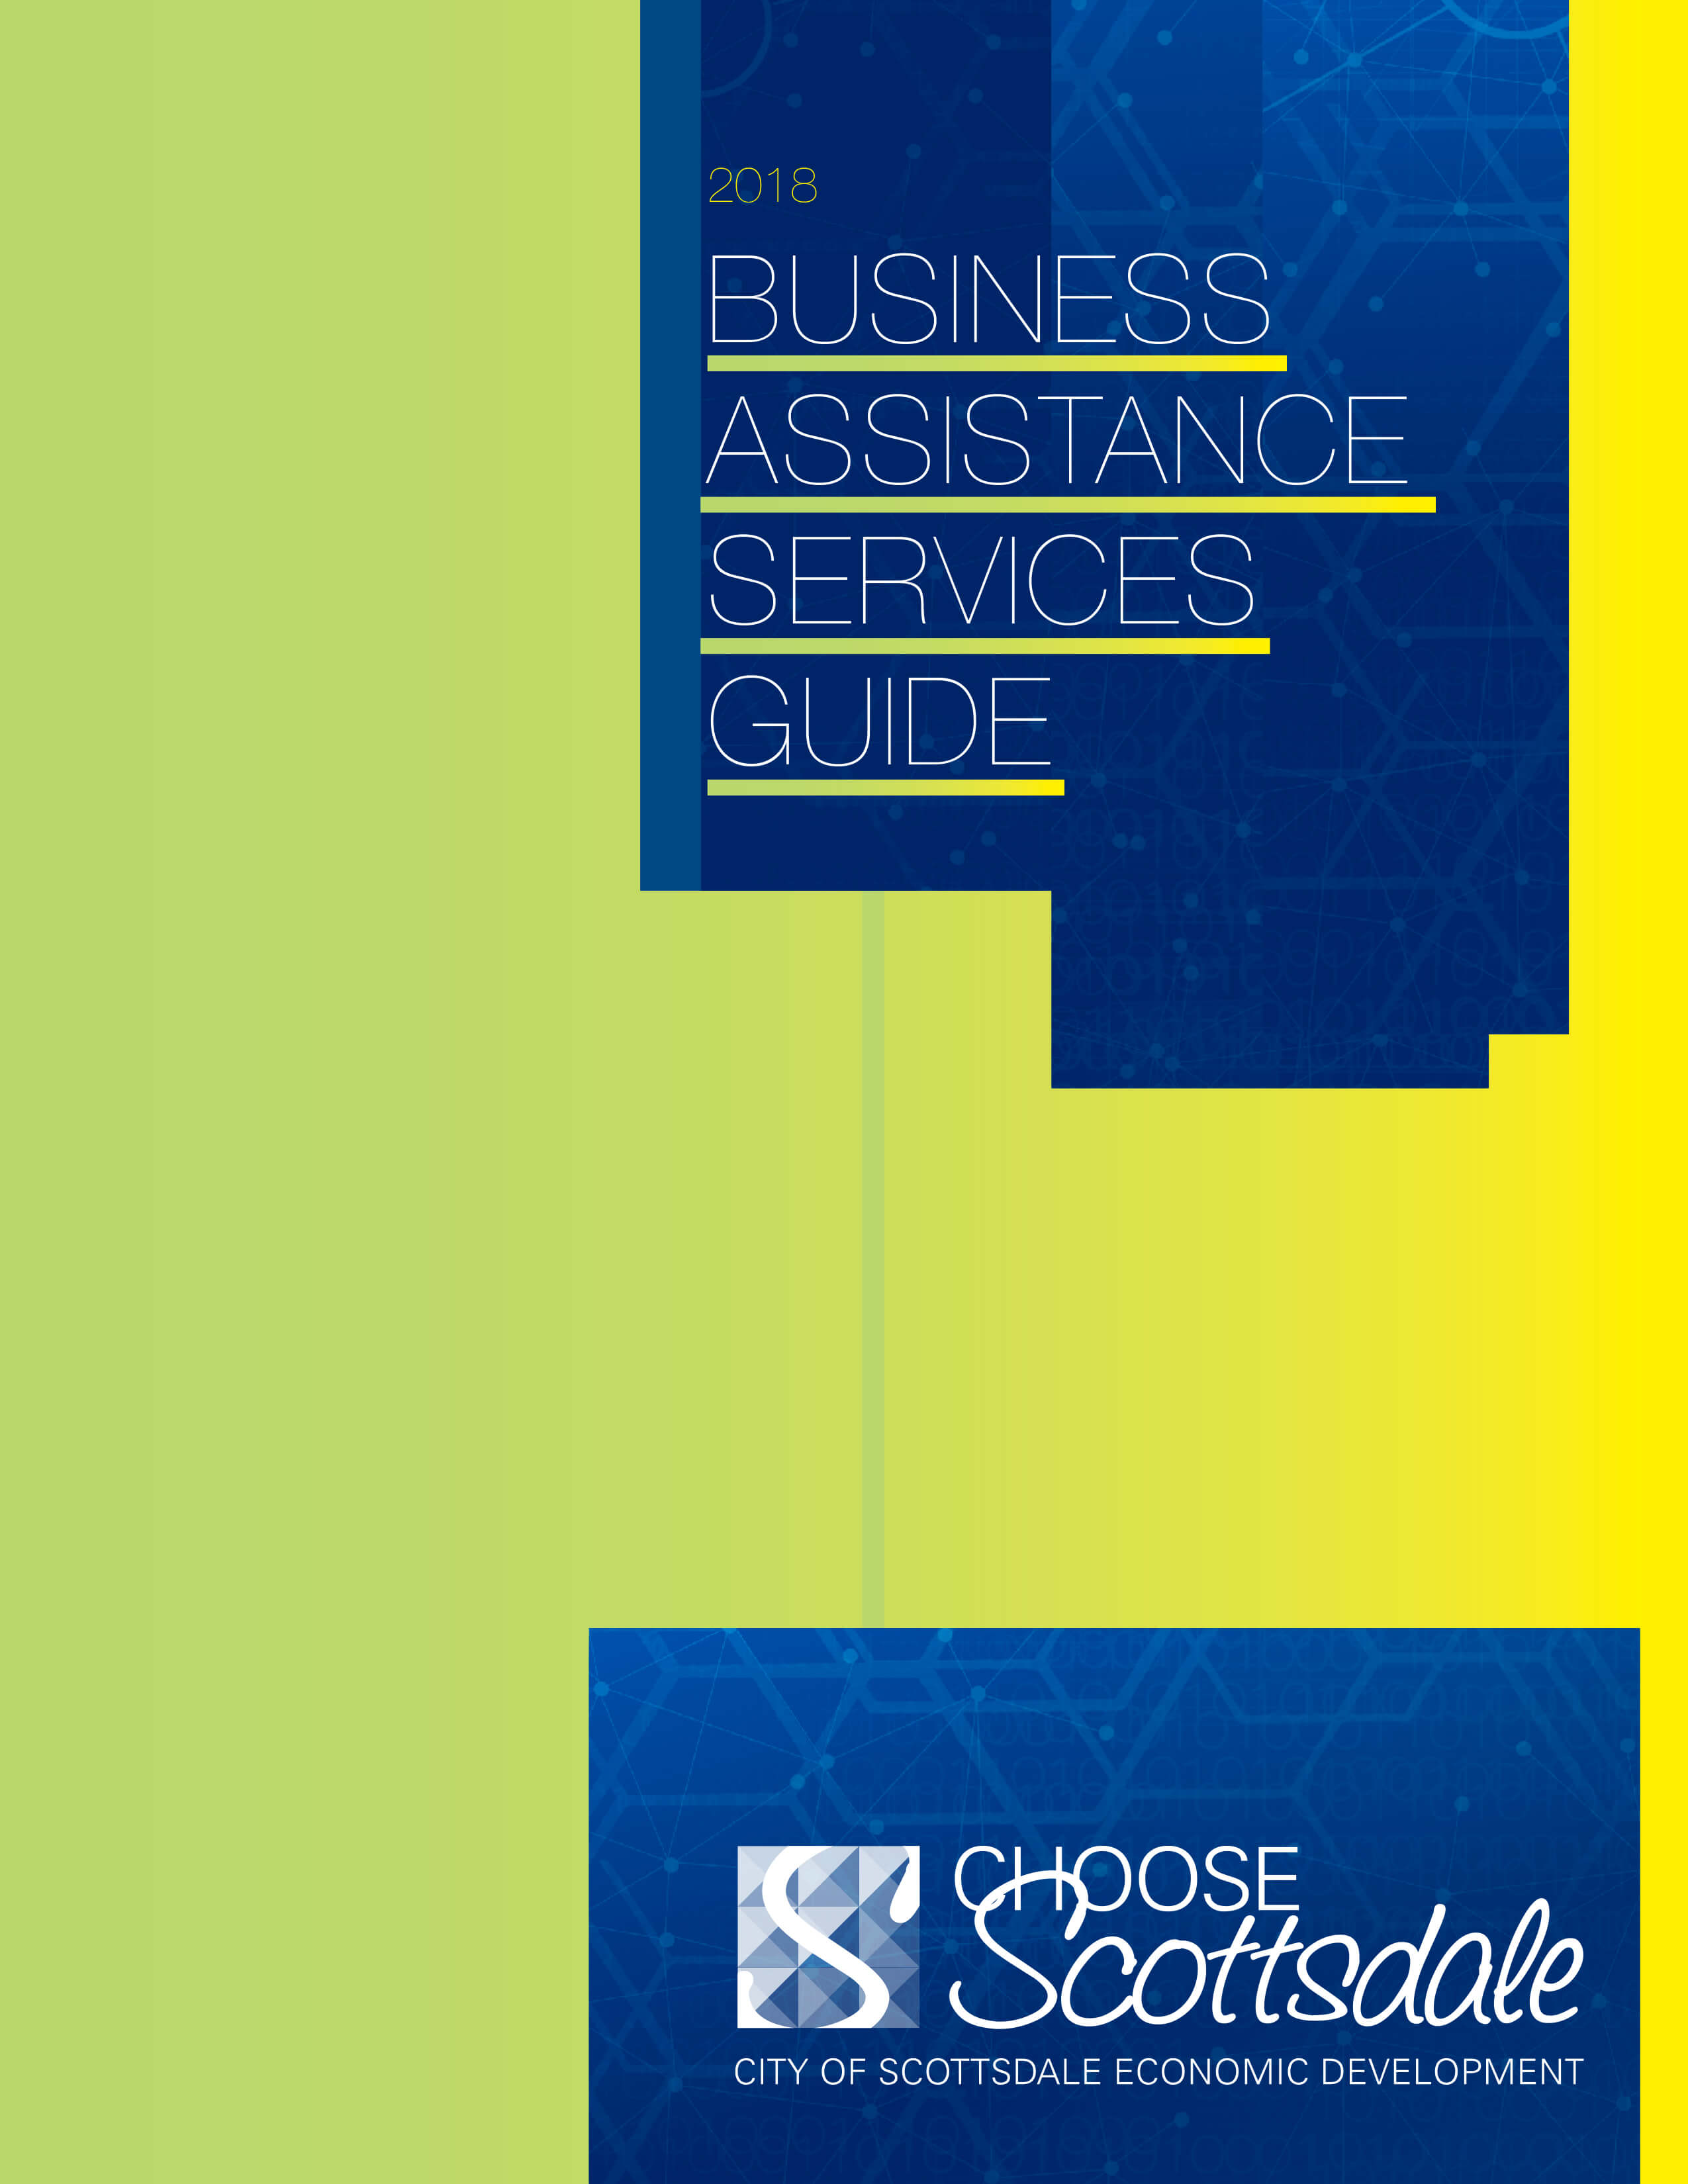 Business Assistance Services Guide Report Cover